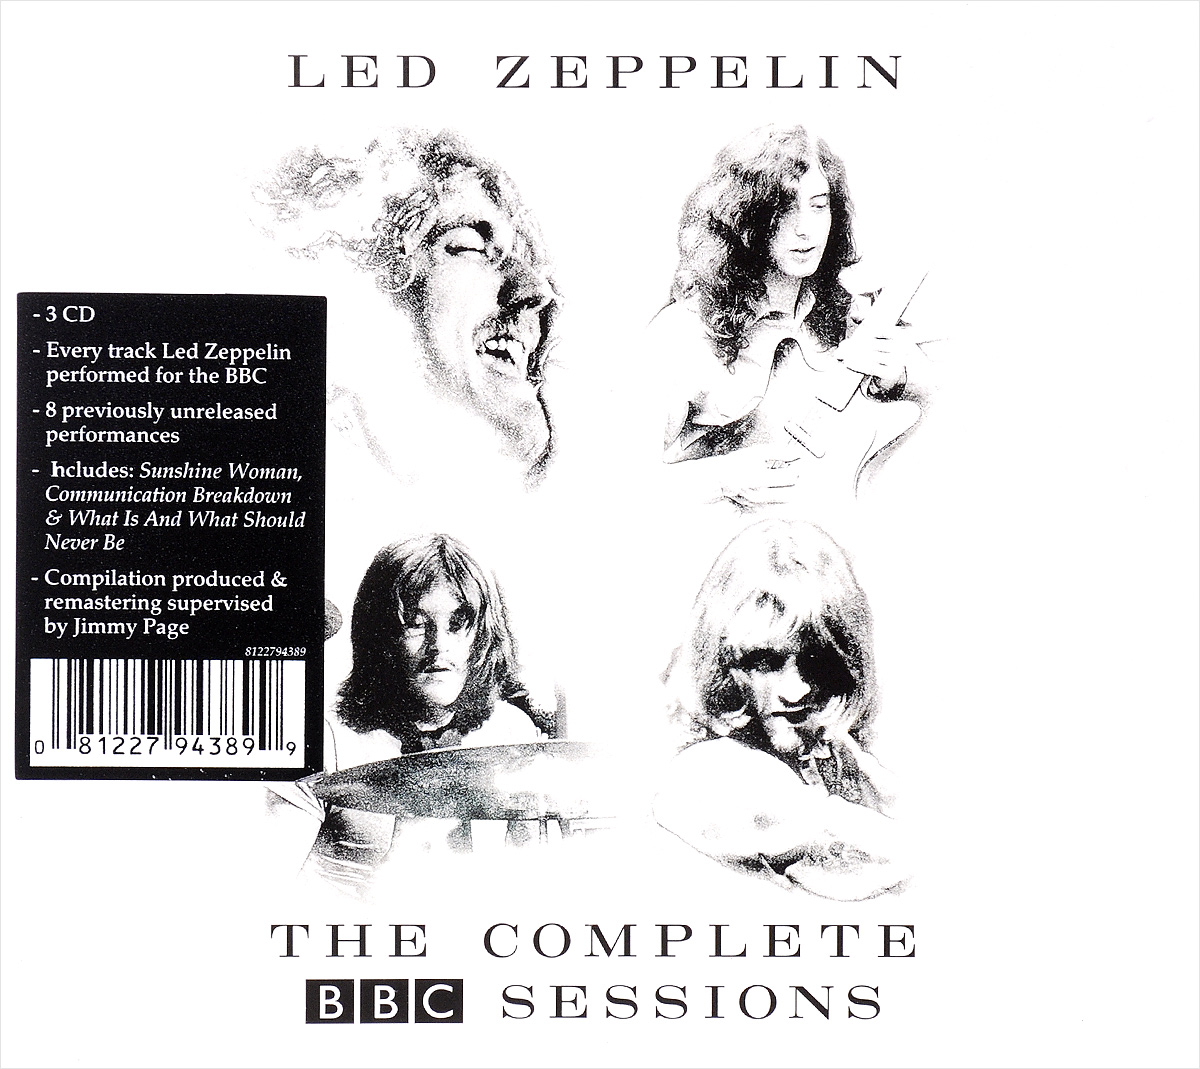 Led Zeppelin Led Zeppelin. The Complete BBC Sessions (3 CD) bbc sessions cd